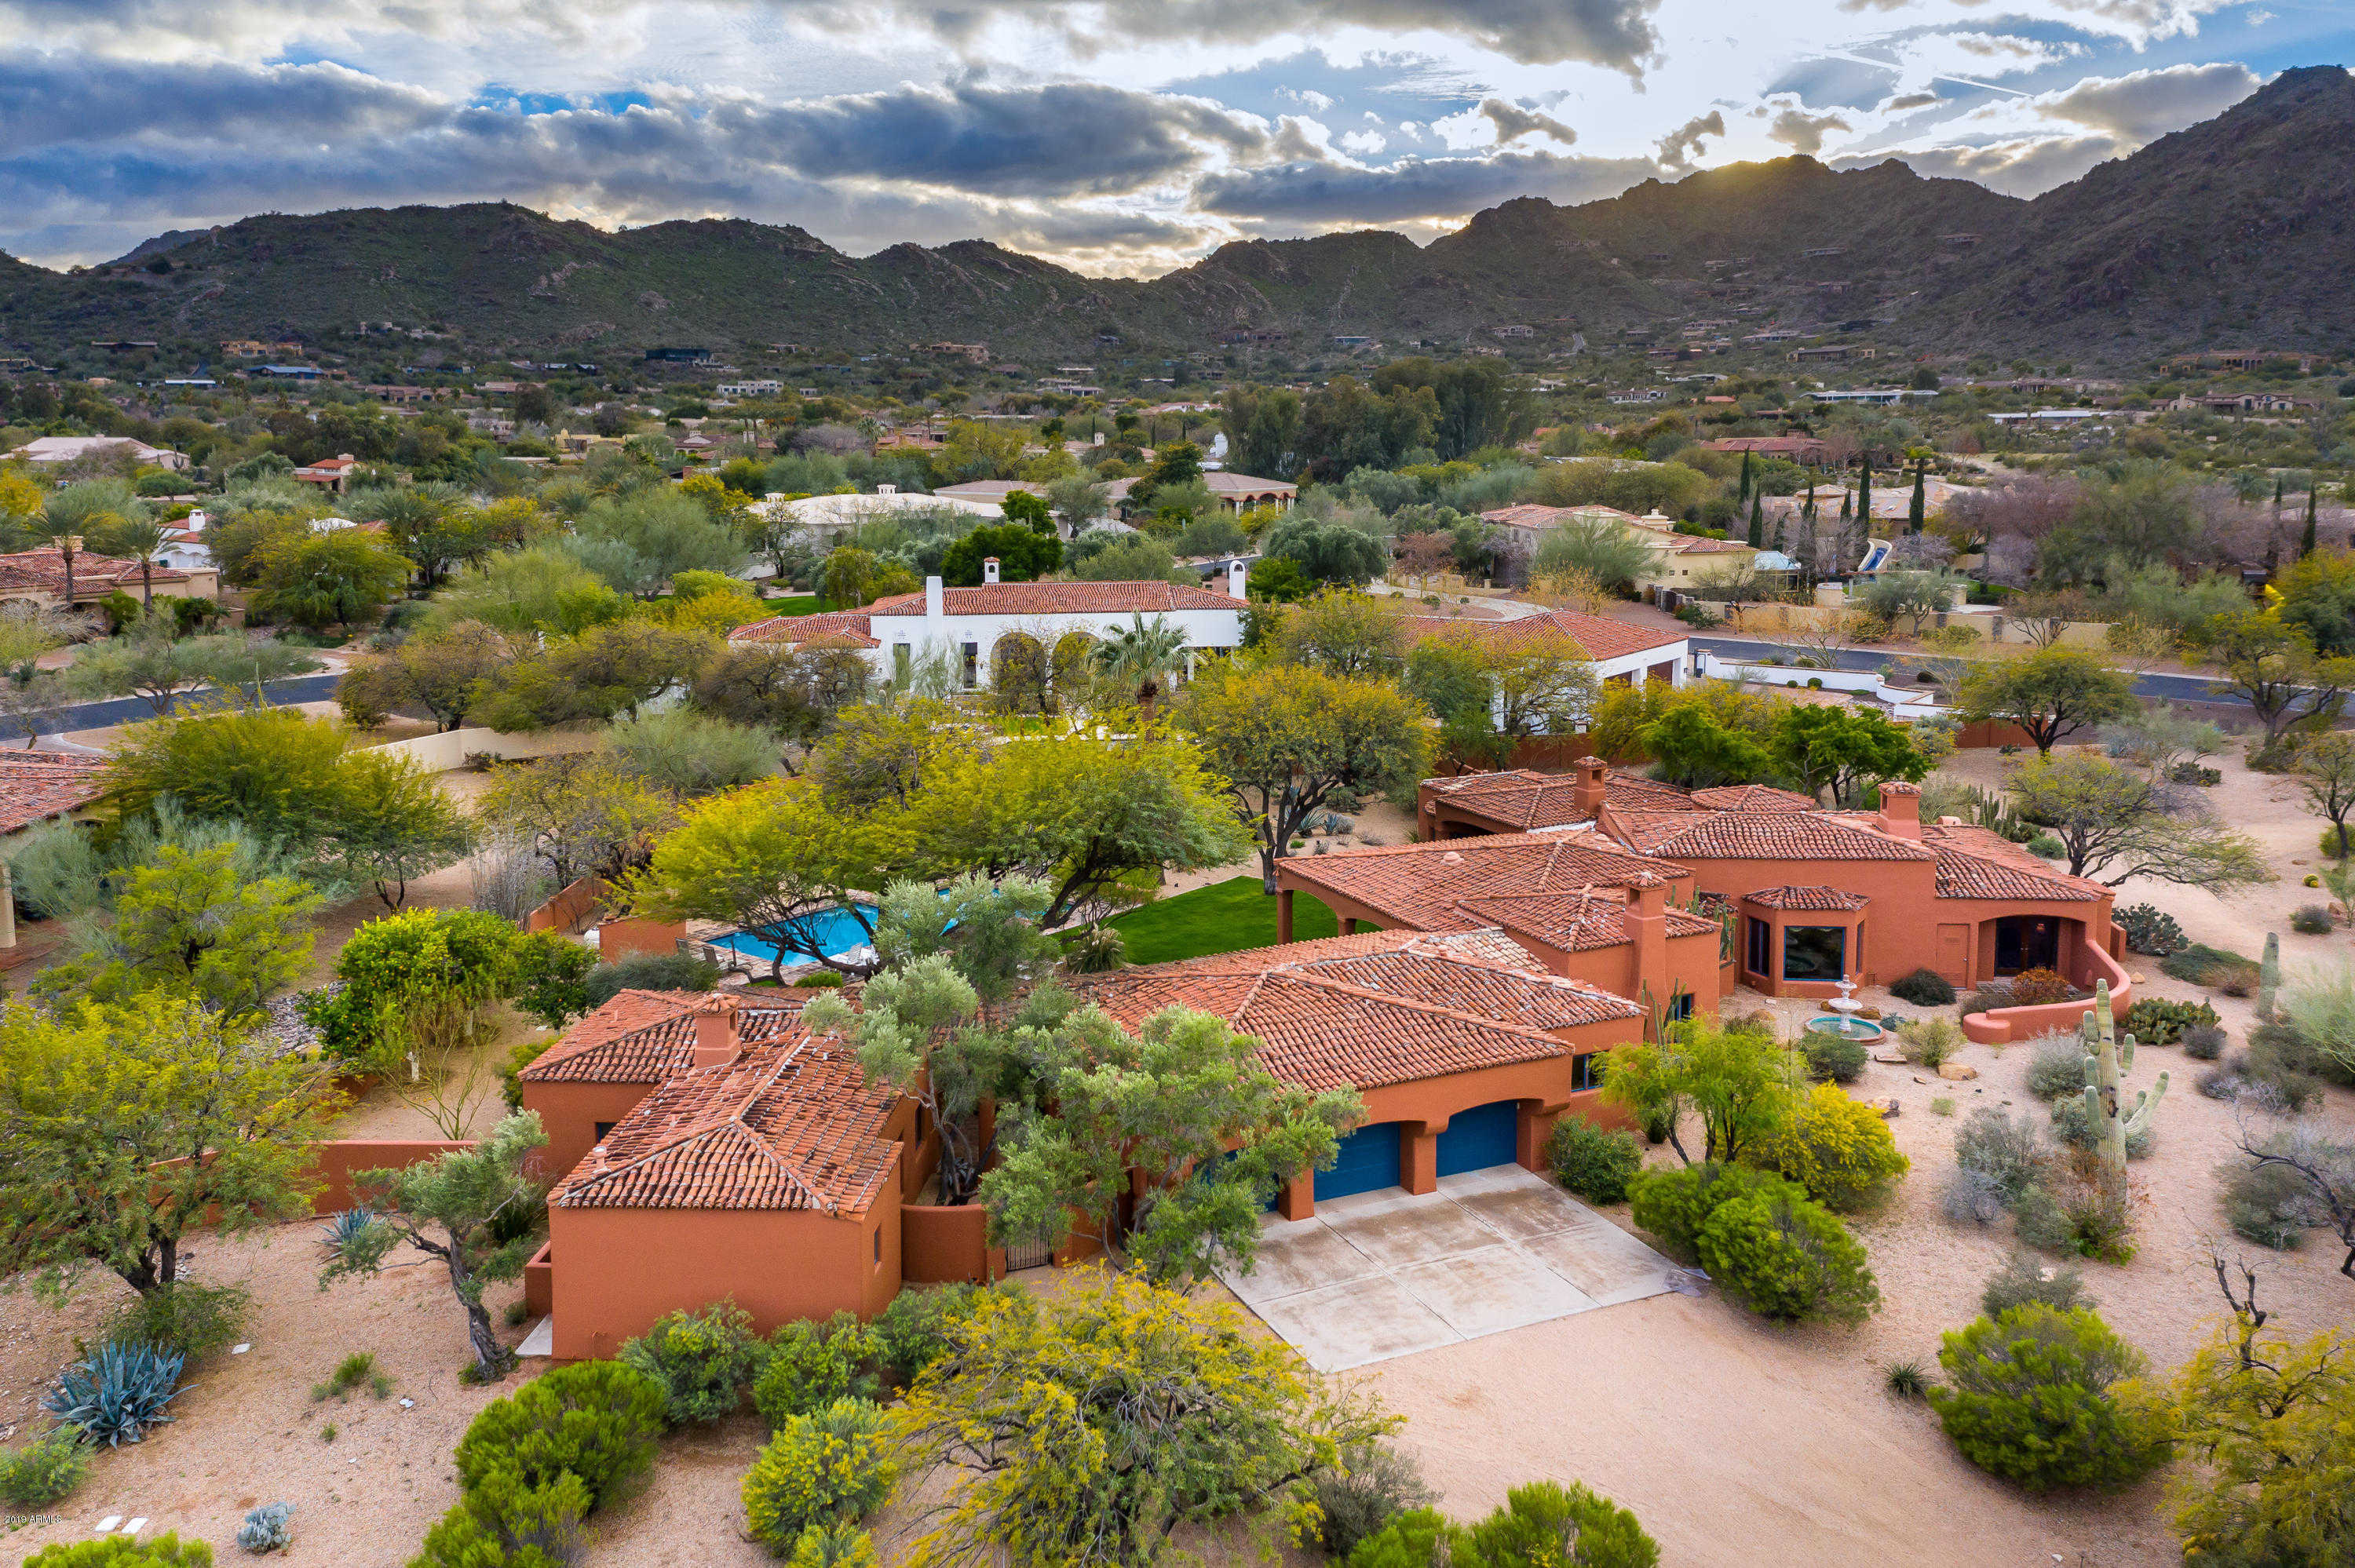 $2,650,000 - 4Br/5Ba - Home for Sale in Mummy Mountain View Lots 1-8, Paradise Valley